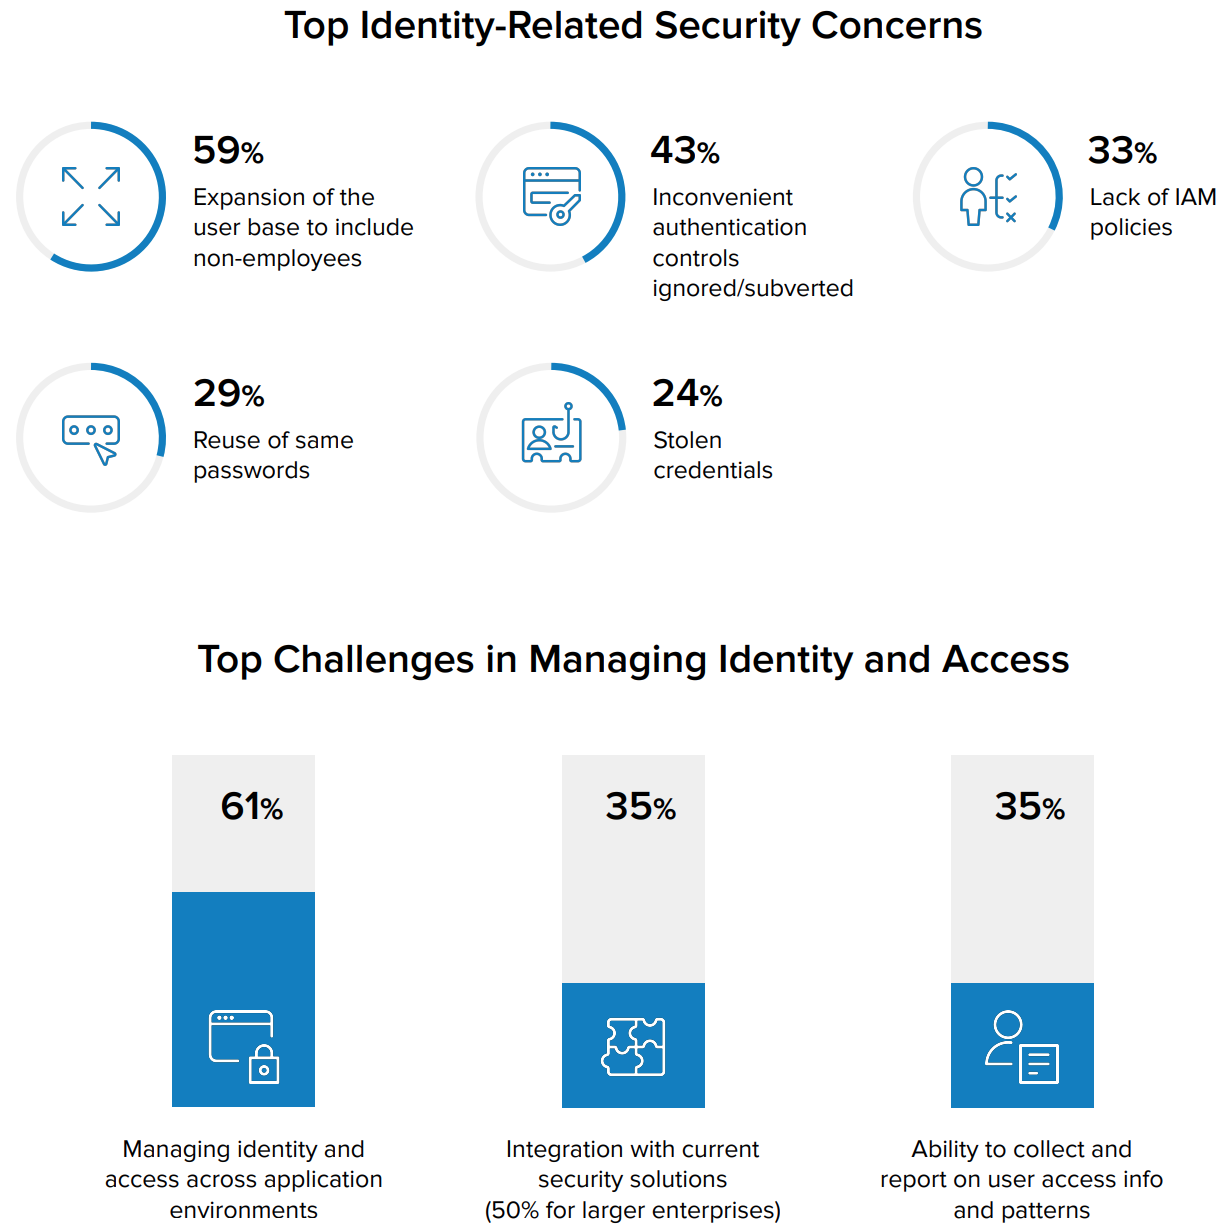 IAM and security concerns